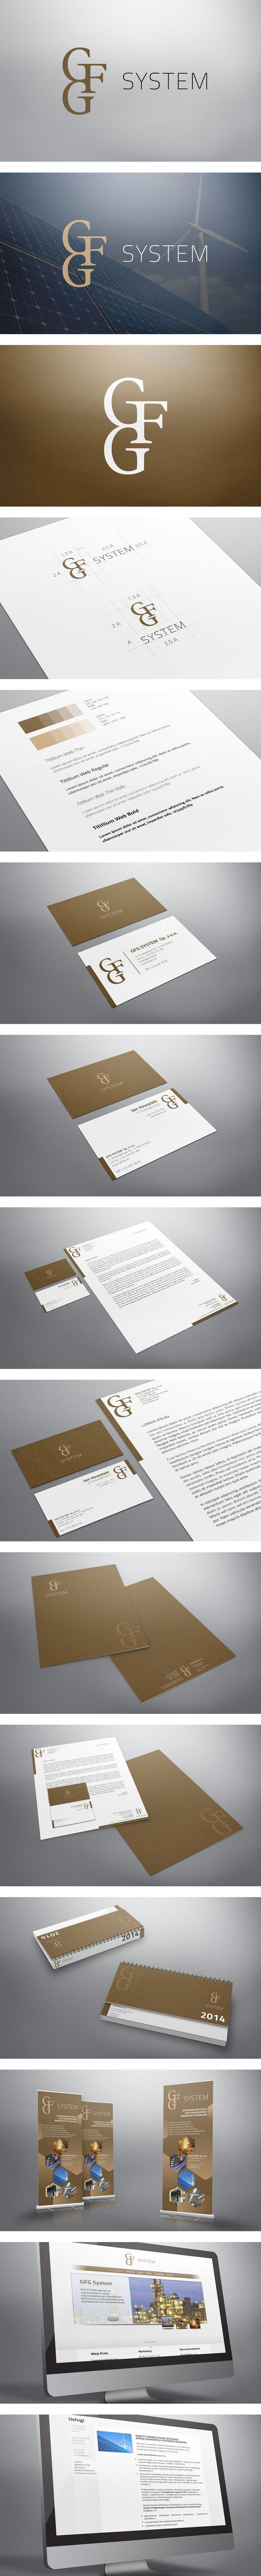 Corporate Identity for GFG SYSTEM. Project included brand new logo and cohesive print design: business cards, letterhead, callendar, roll-up and files.